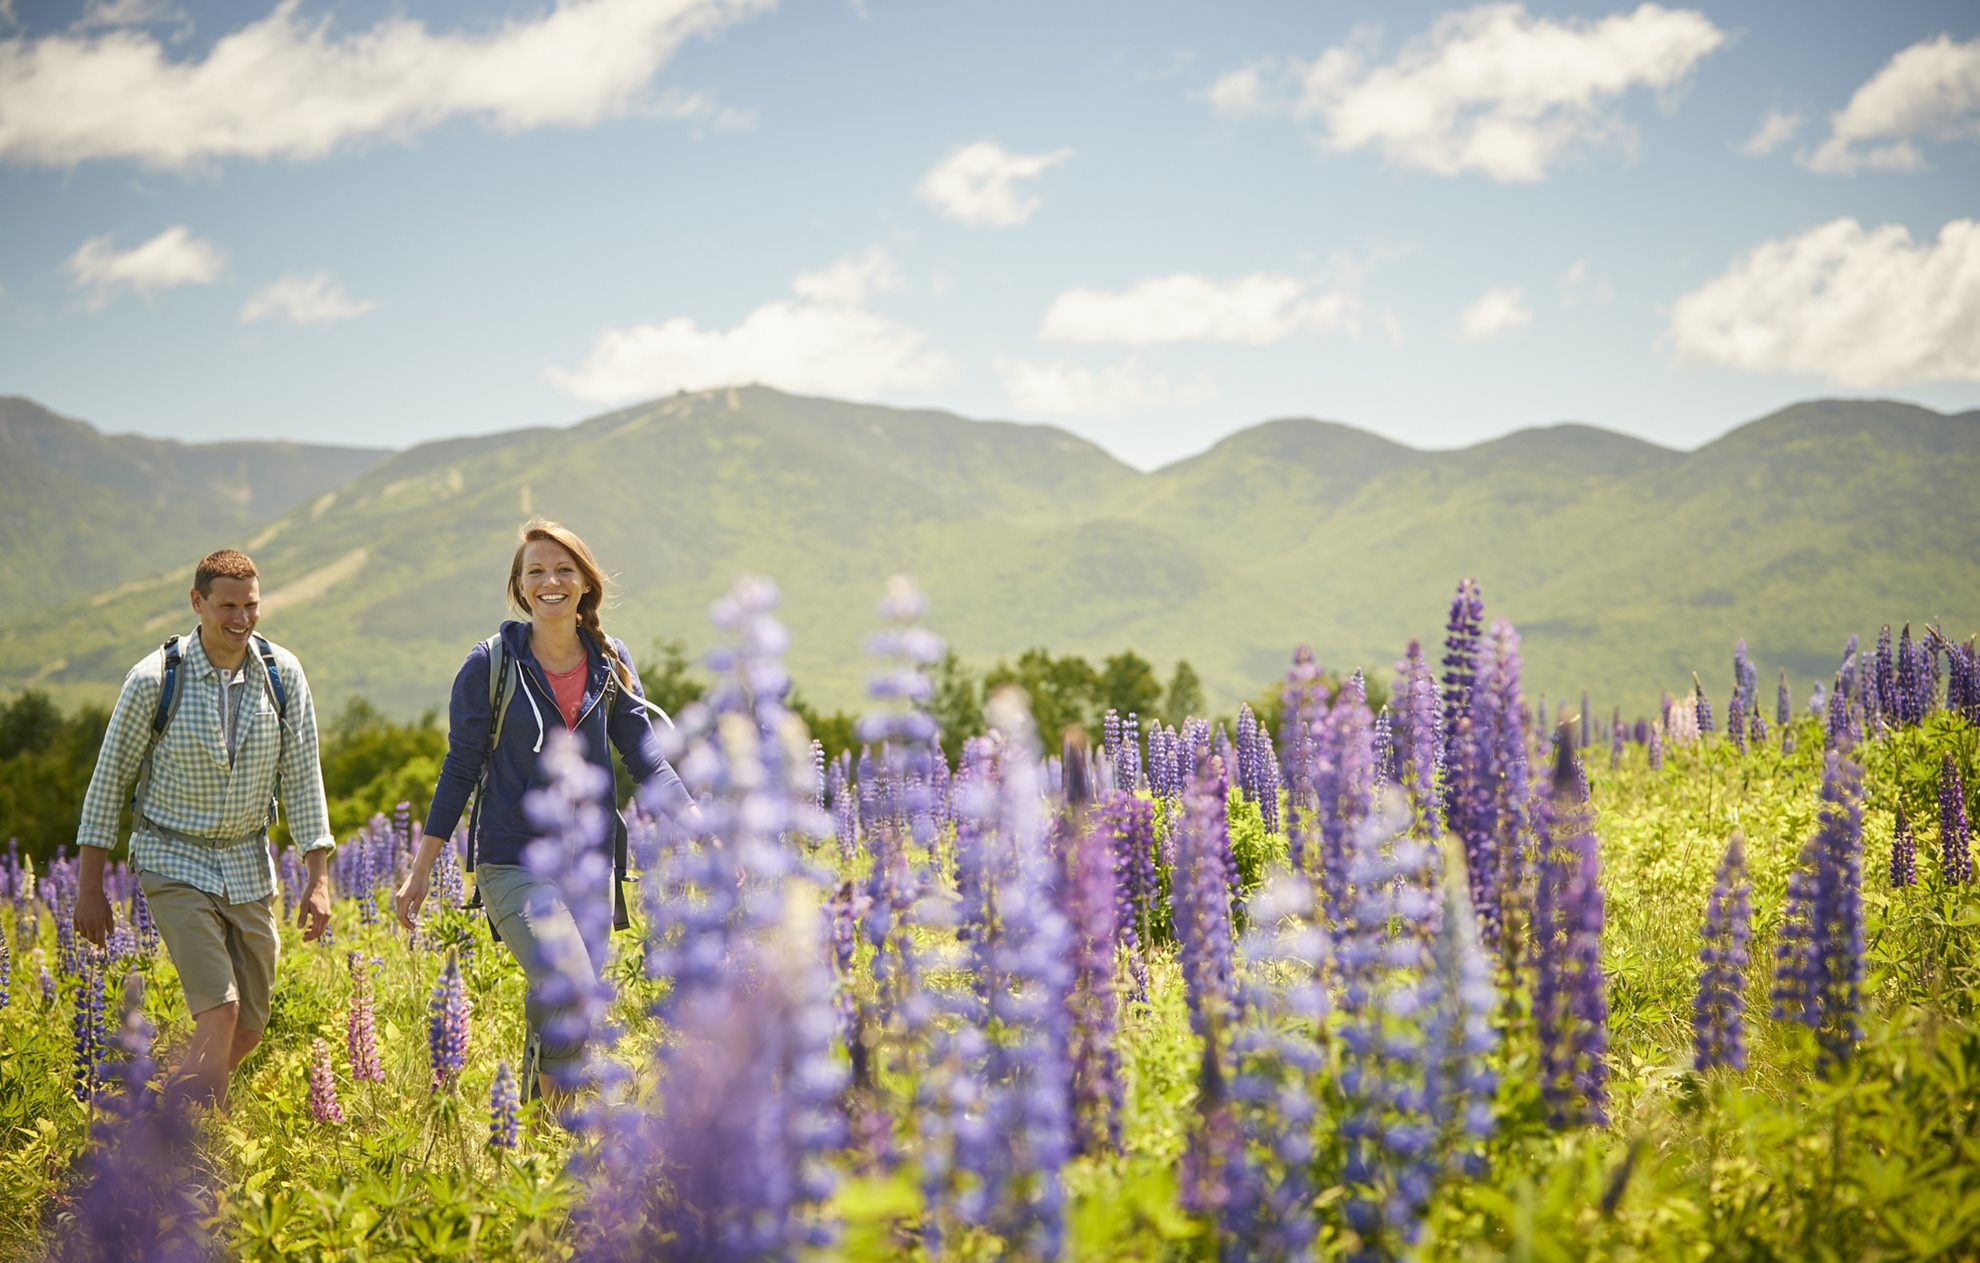 A man and a woman walking through a field of lupine with mountains behind them